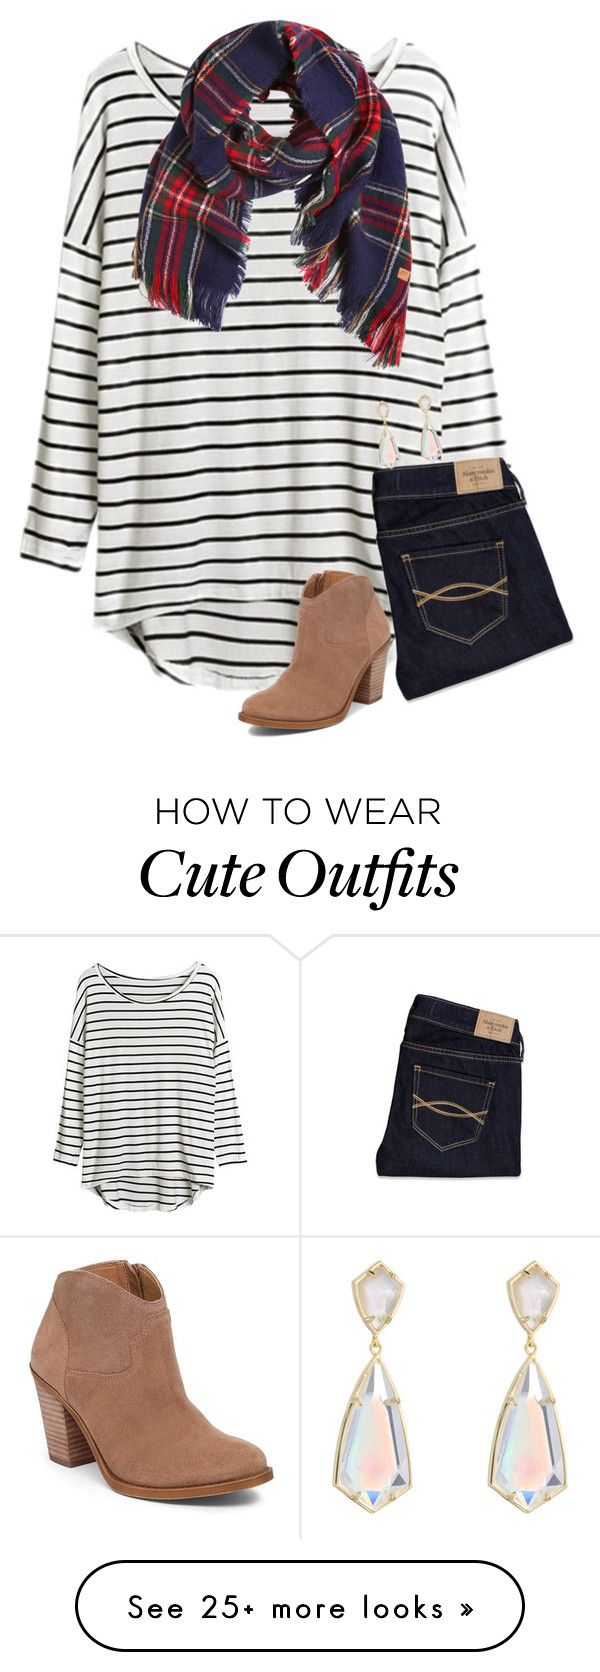 """{pattern mixing is so cute, but I just can't pull it off...}"" by preppy-southern-girl-1-2-3 on Polyvore featuring Abercrombie & Fitch, Lucky Brand, American Outfitters and Kendra Scott"